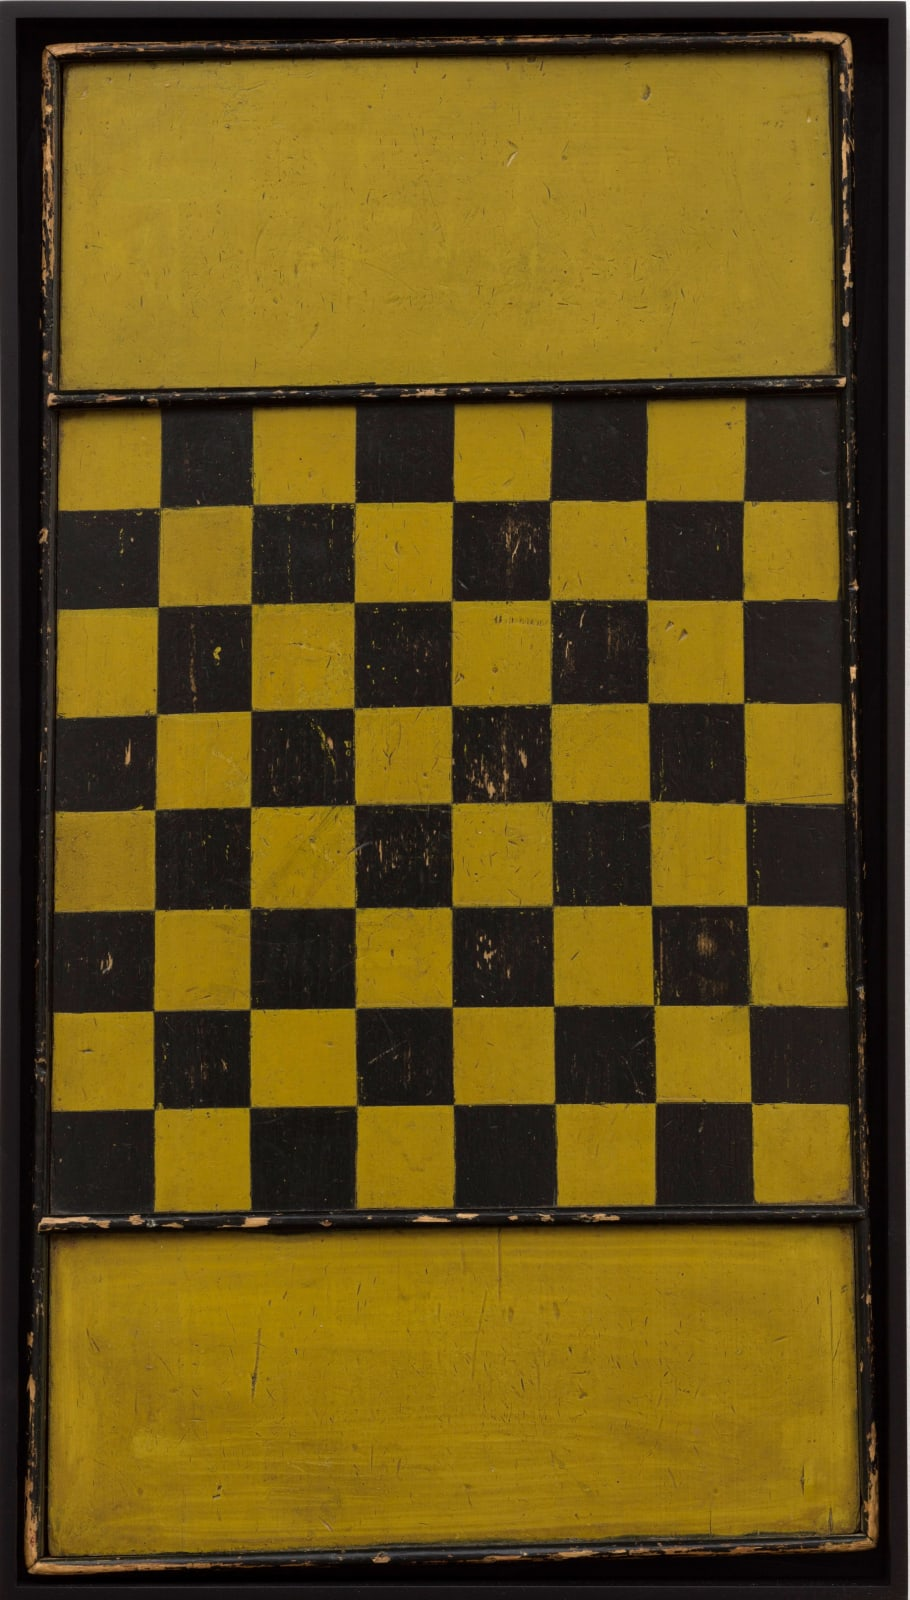 YELLOW AND BLACK CHECKERS GAME BOARD, LATE 19TH CENTURY Oil enamel on wood panel 31 x 17 in. 78.7 x 43.2 cm. (AU 254)